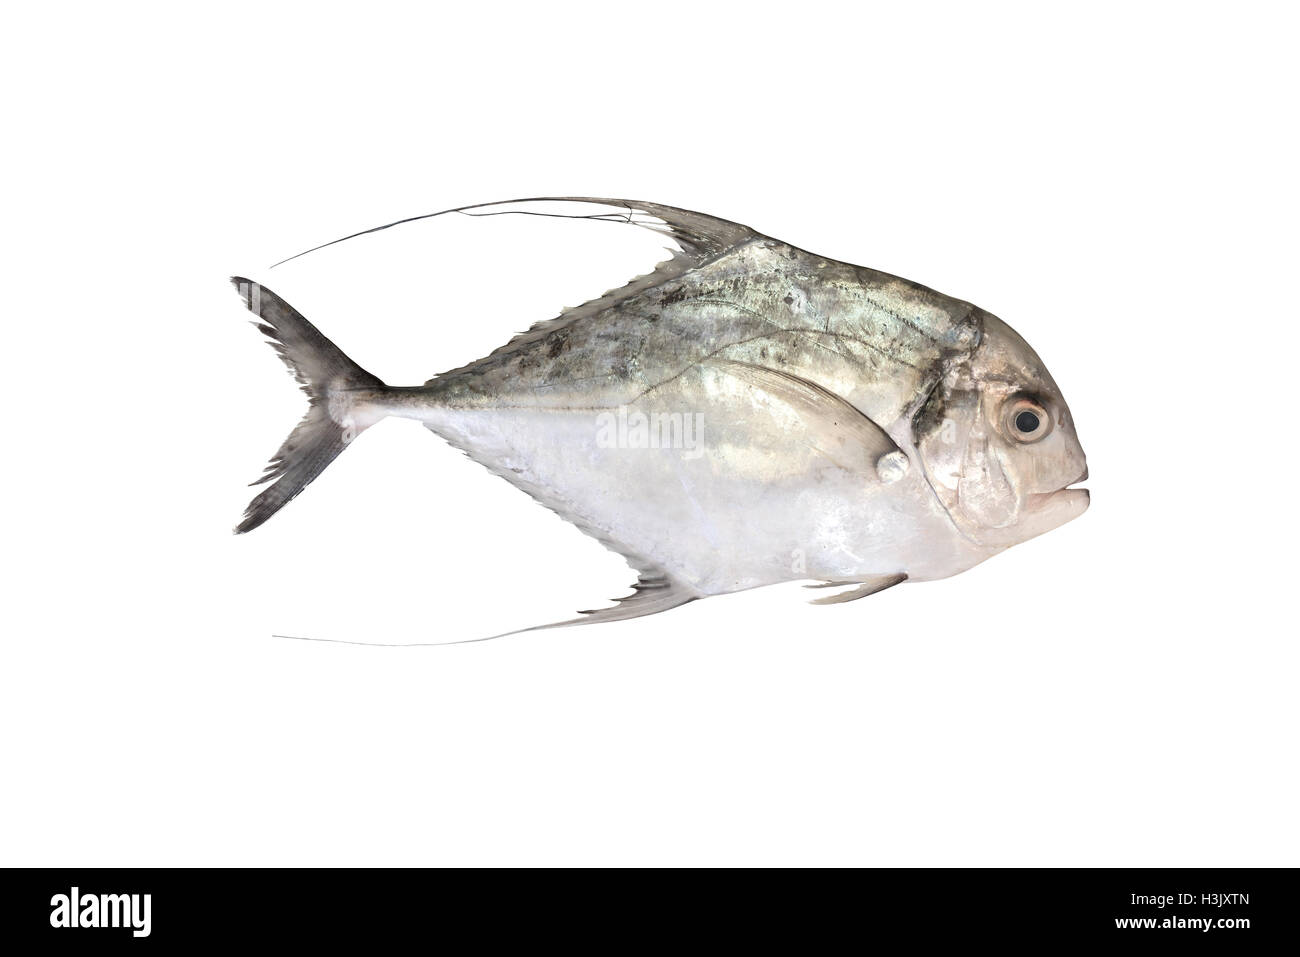 Threadfin Travelly - Alectis ciliaris - Stock Image